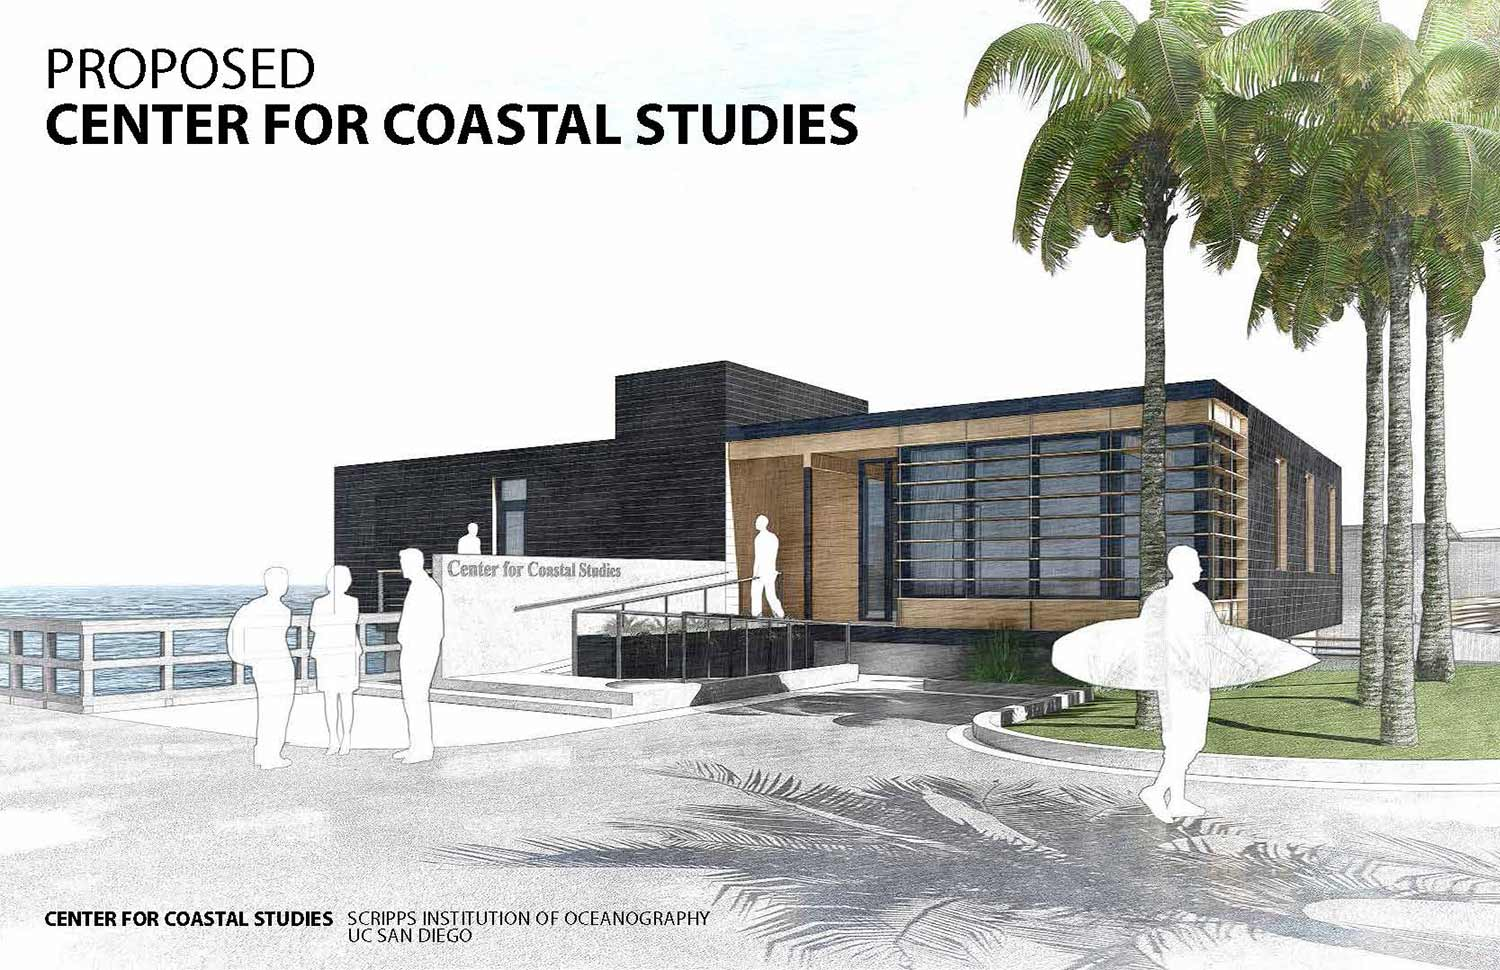 proposed center for coastal studies at UC San Diego